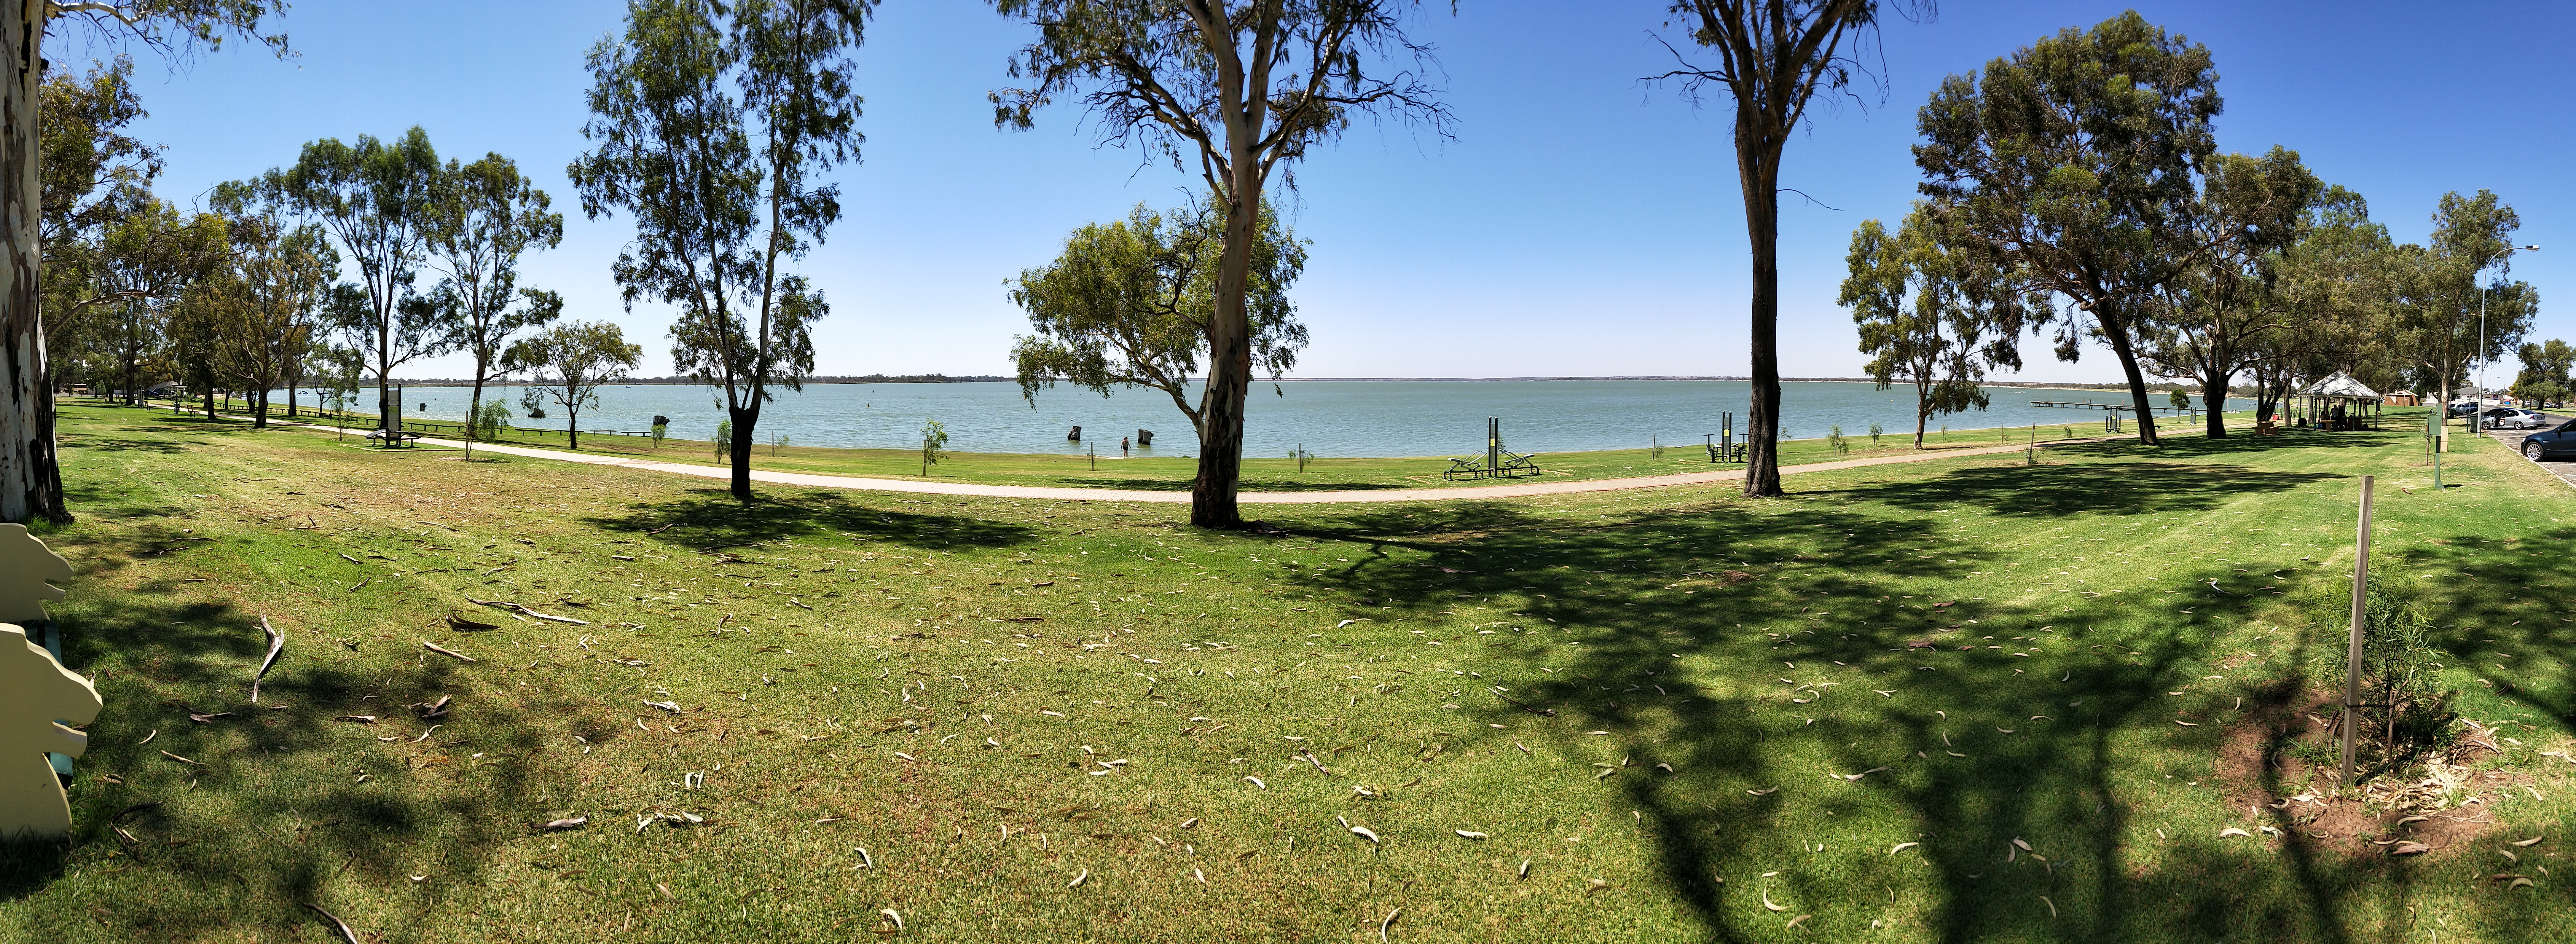 Tiny Towns of the Murray River - Barmera